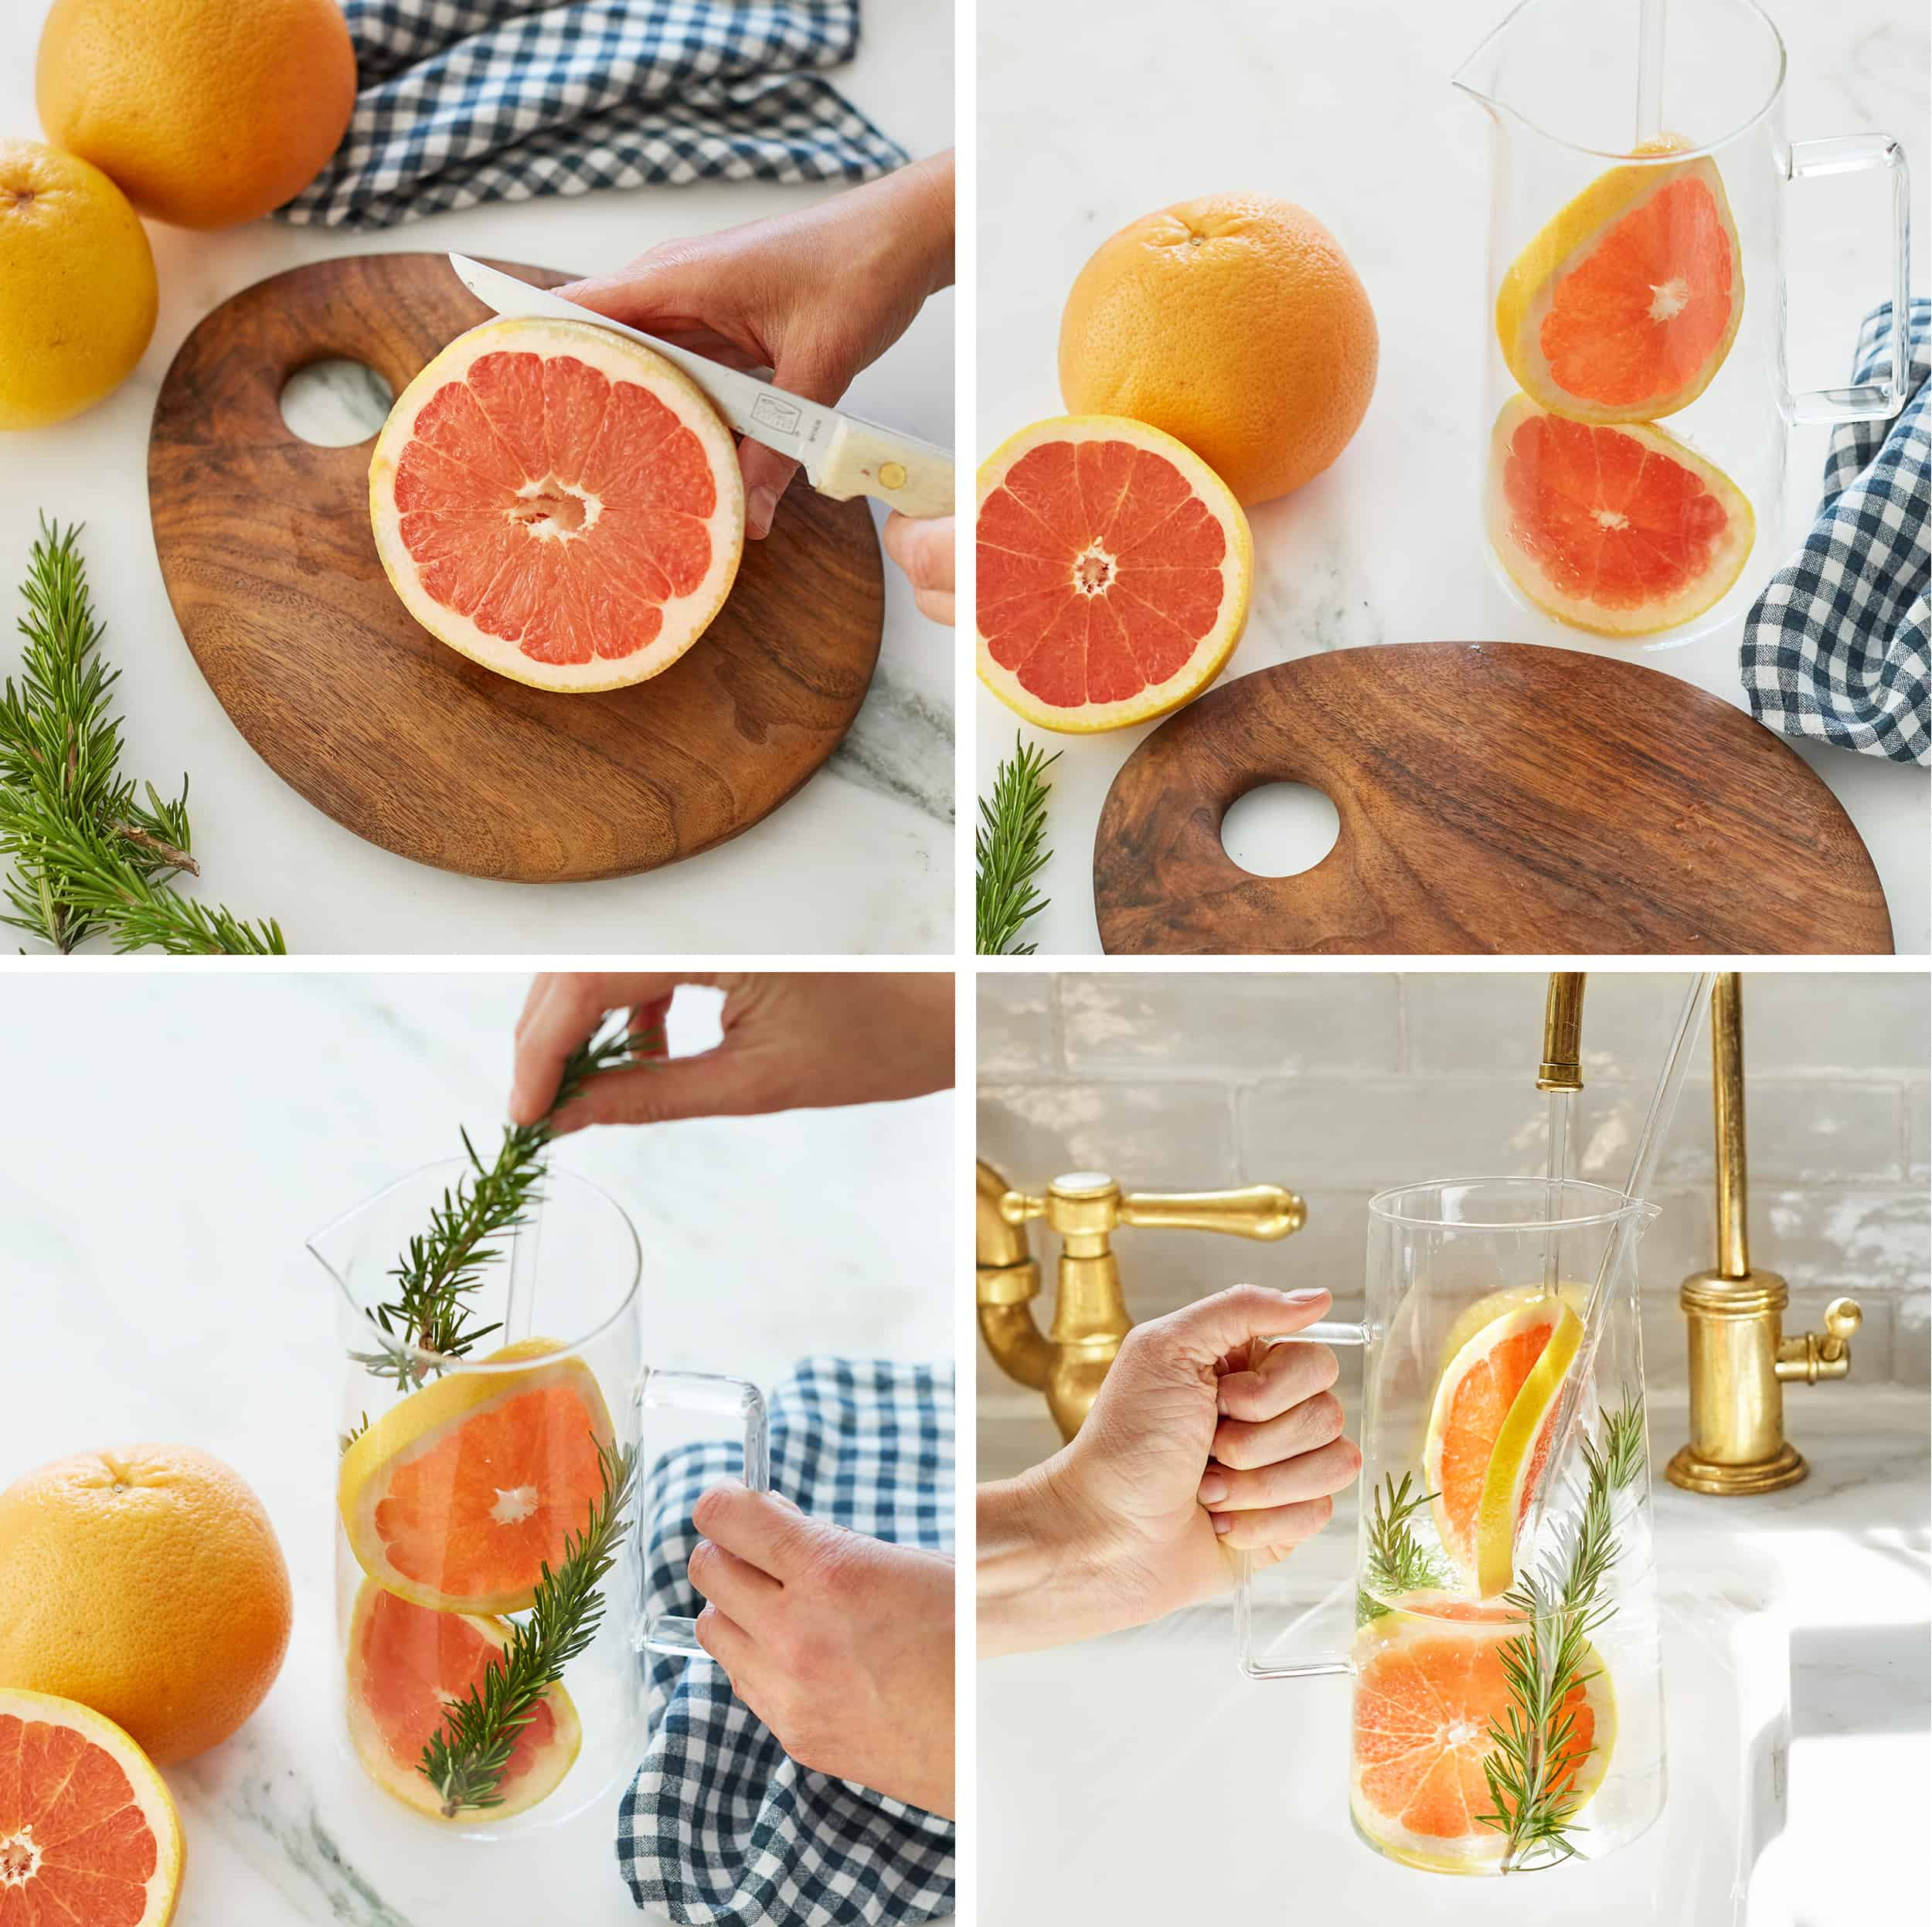 Spa Day Culligan To Be Edited Grapefruit Water1